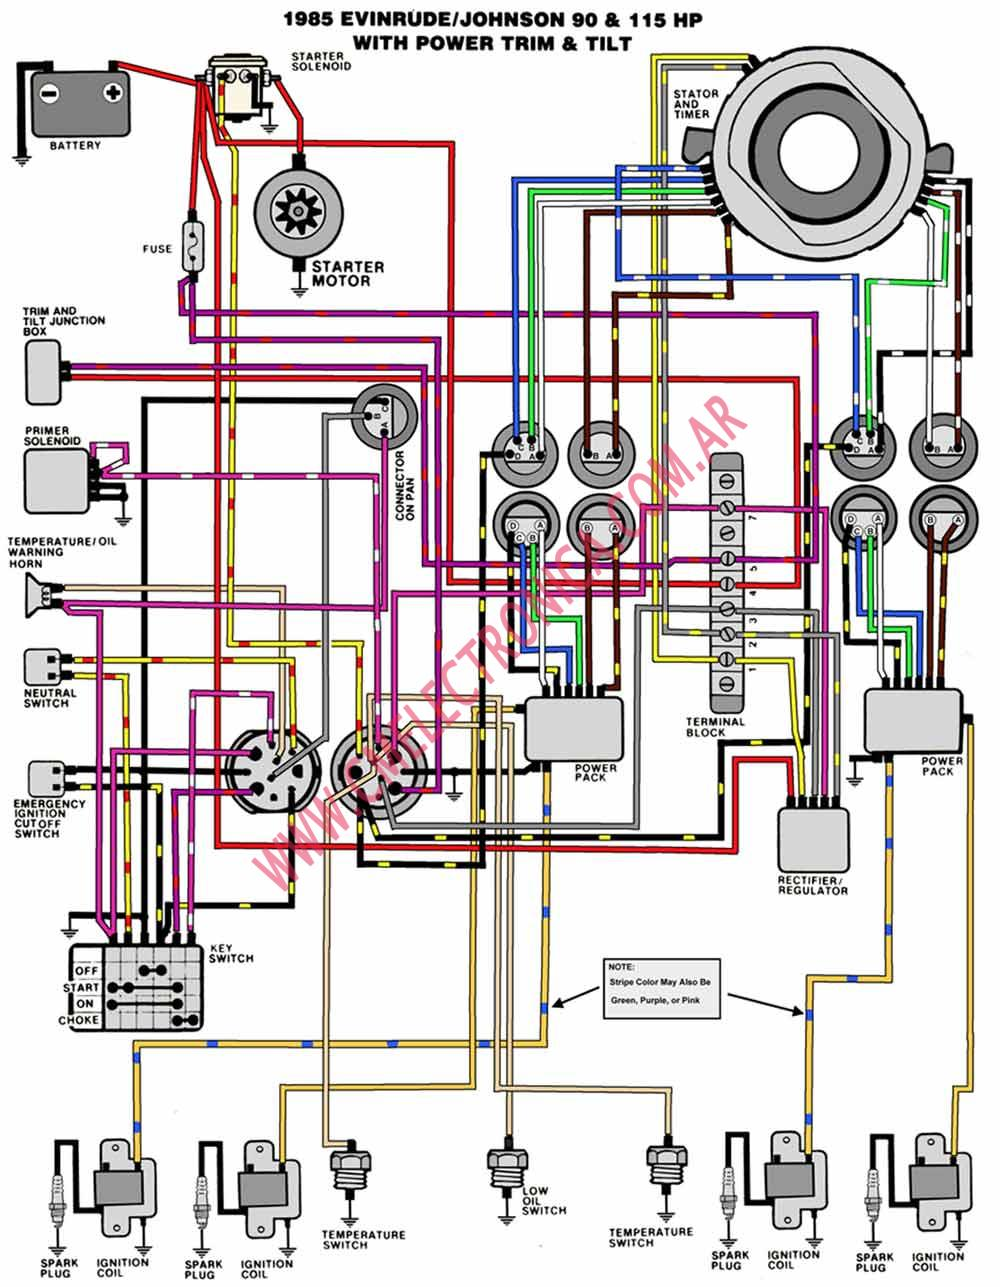 evinrude_johnson 1985_90_115 tnt 2 yamaha f115 wiring diagram yamaha outboard control wiring diagram Yamaha Outboard Wiring Schematic at edmiracle.co